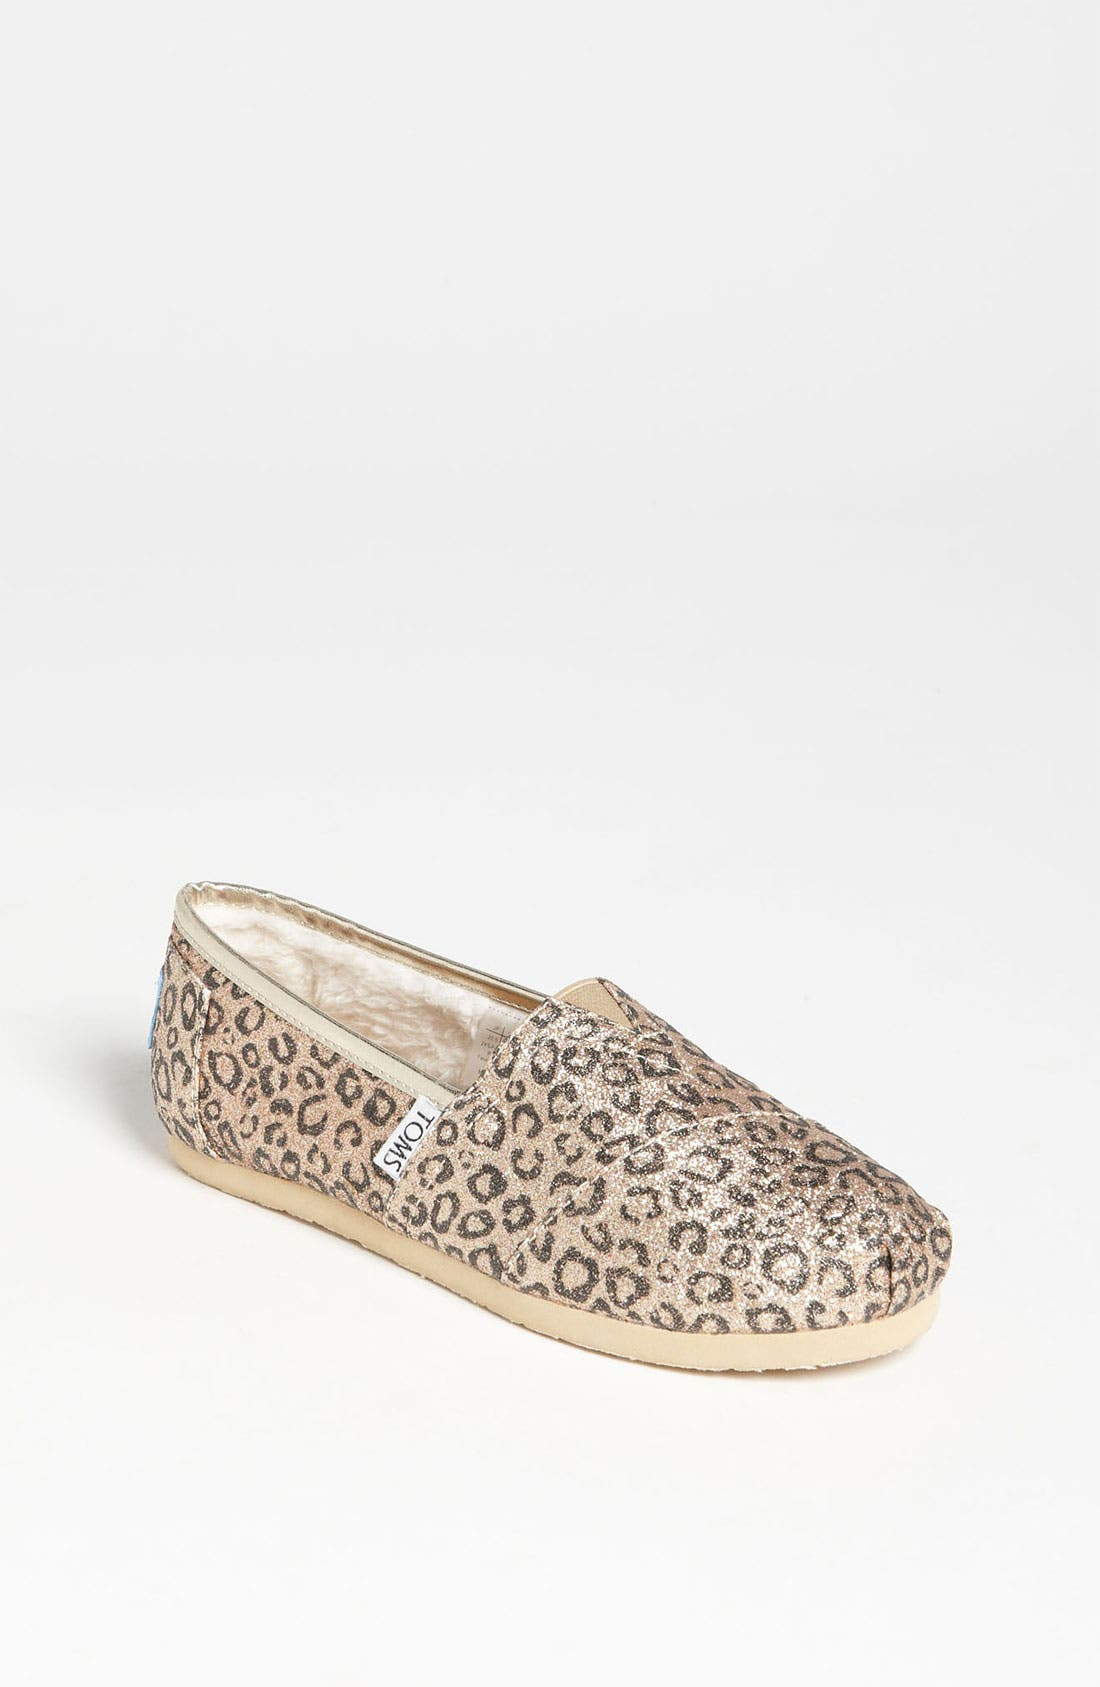 Alternate Image 1 Selected - TOMS 'Classic Youth - Glitter' Print Slip-On (Toddler, Little Kid & Big Kid) (Nordstrom Exclusive)